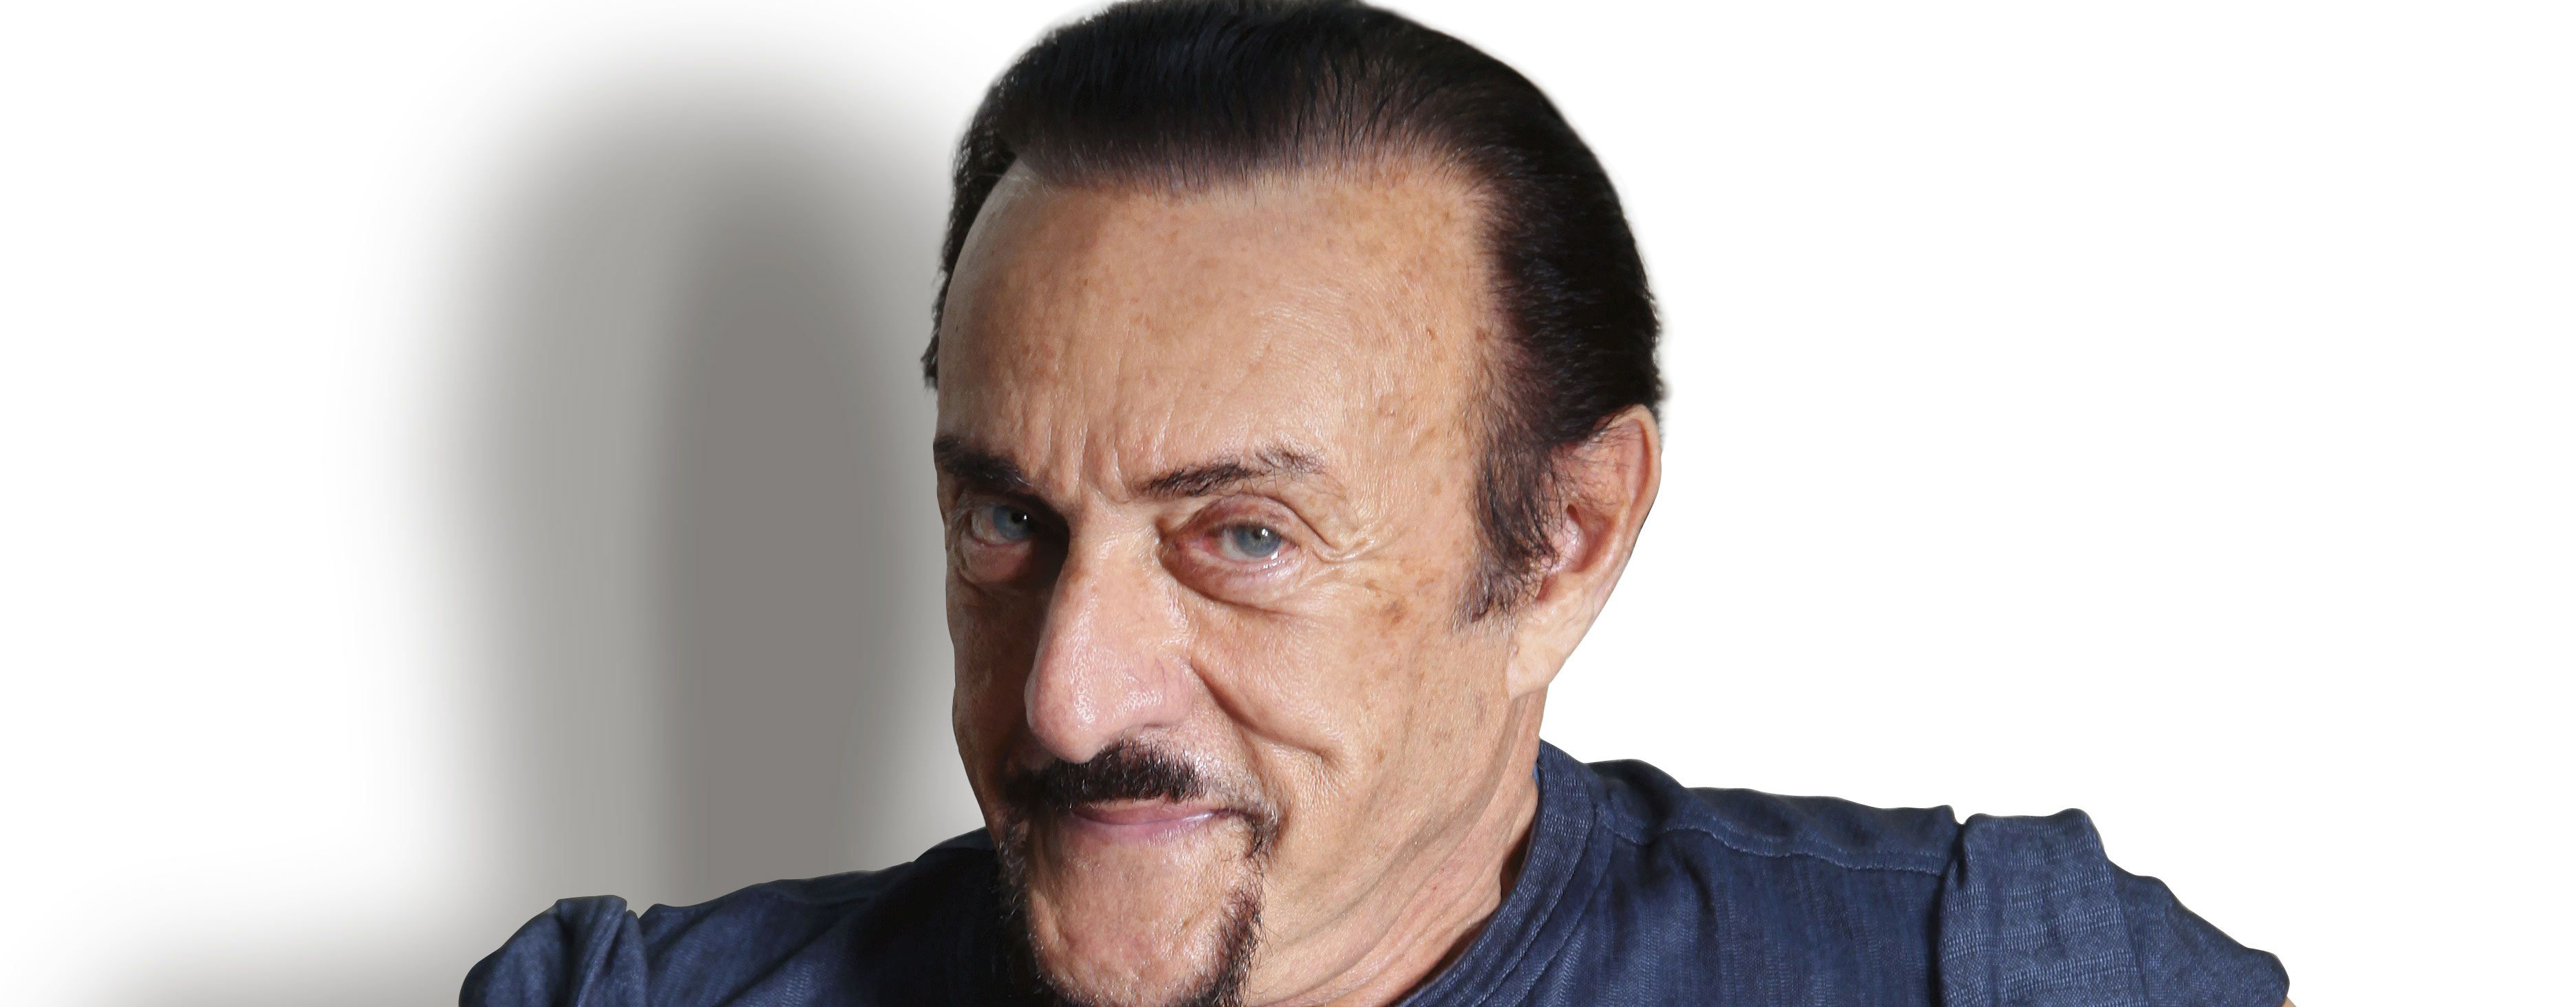 a biography of philip zimbardo an american phychologist List of famous psychologists with their biographies that include trivia,  philip zimbardo (american) wilhelm reich (austrian,american) simon baron-cohen (british.